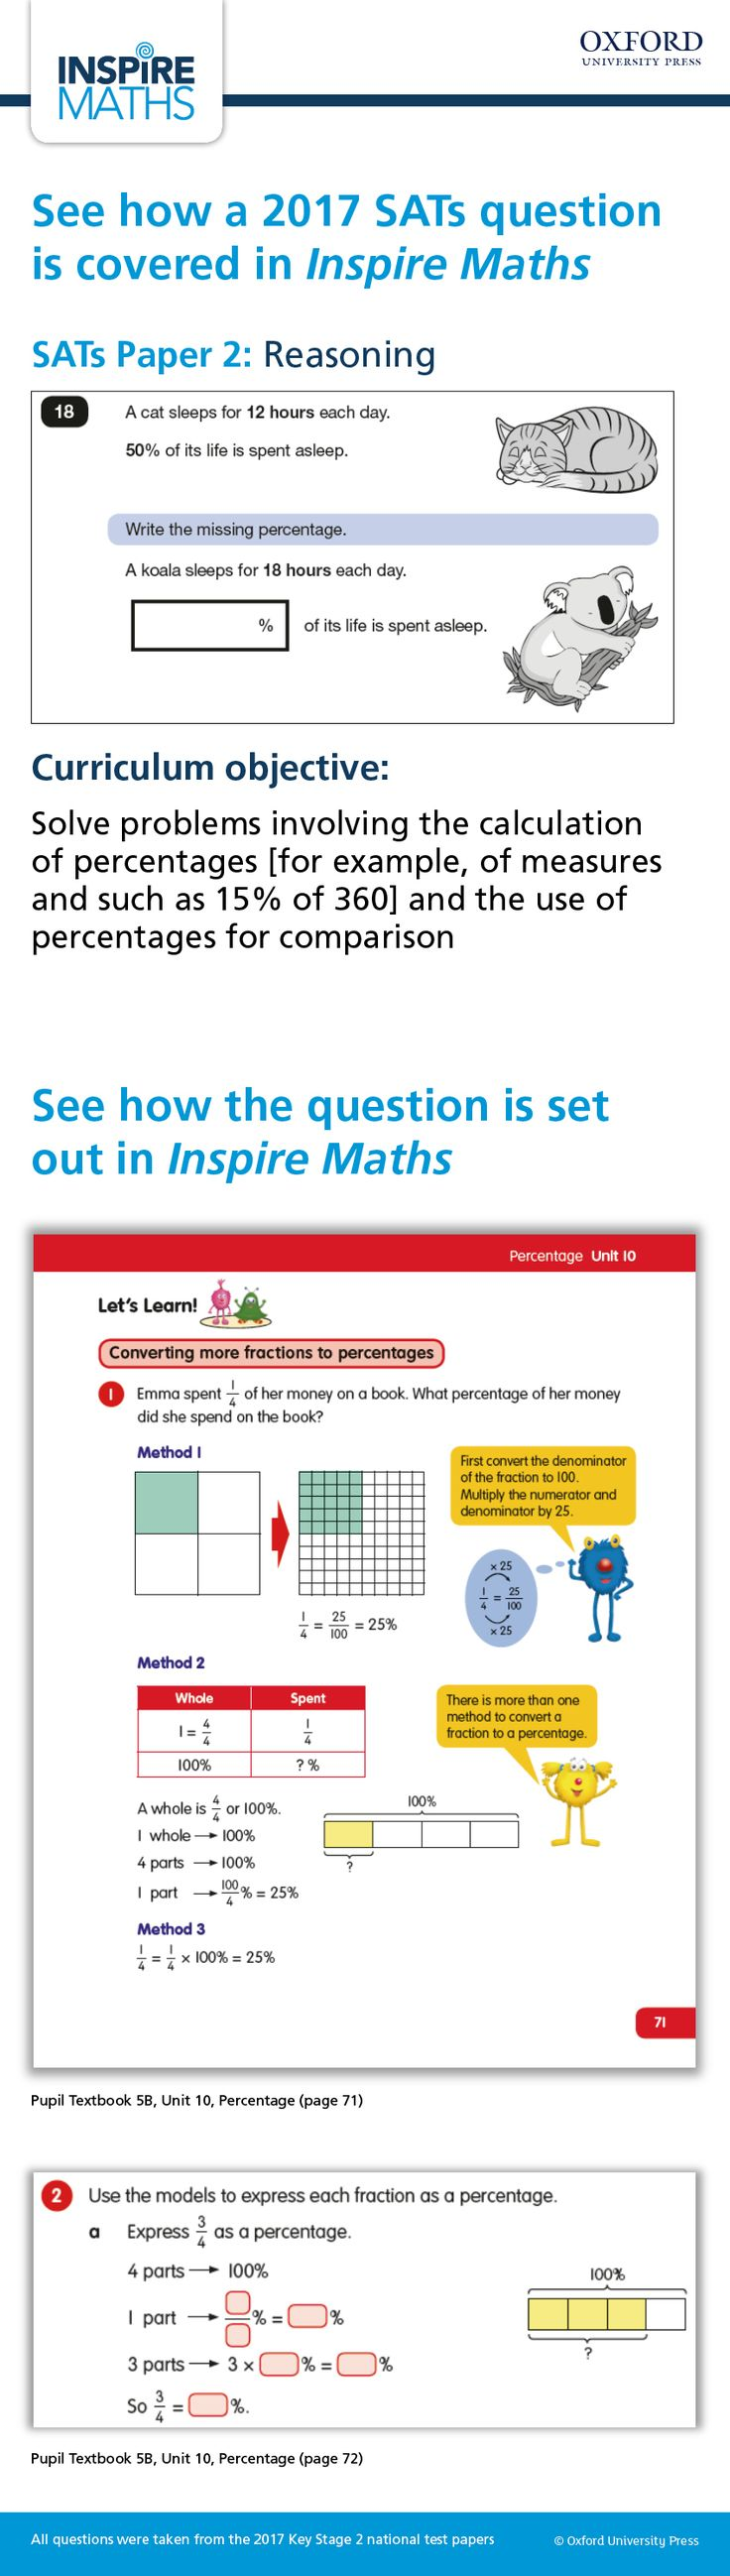 See how a 2017 SATs question is covered in an Inspire Maths textbook to support teaching mastery of mathematics